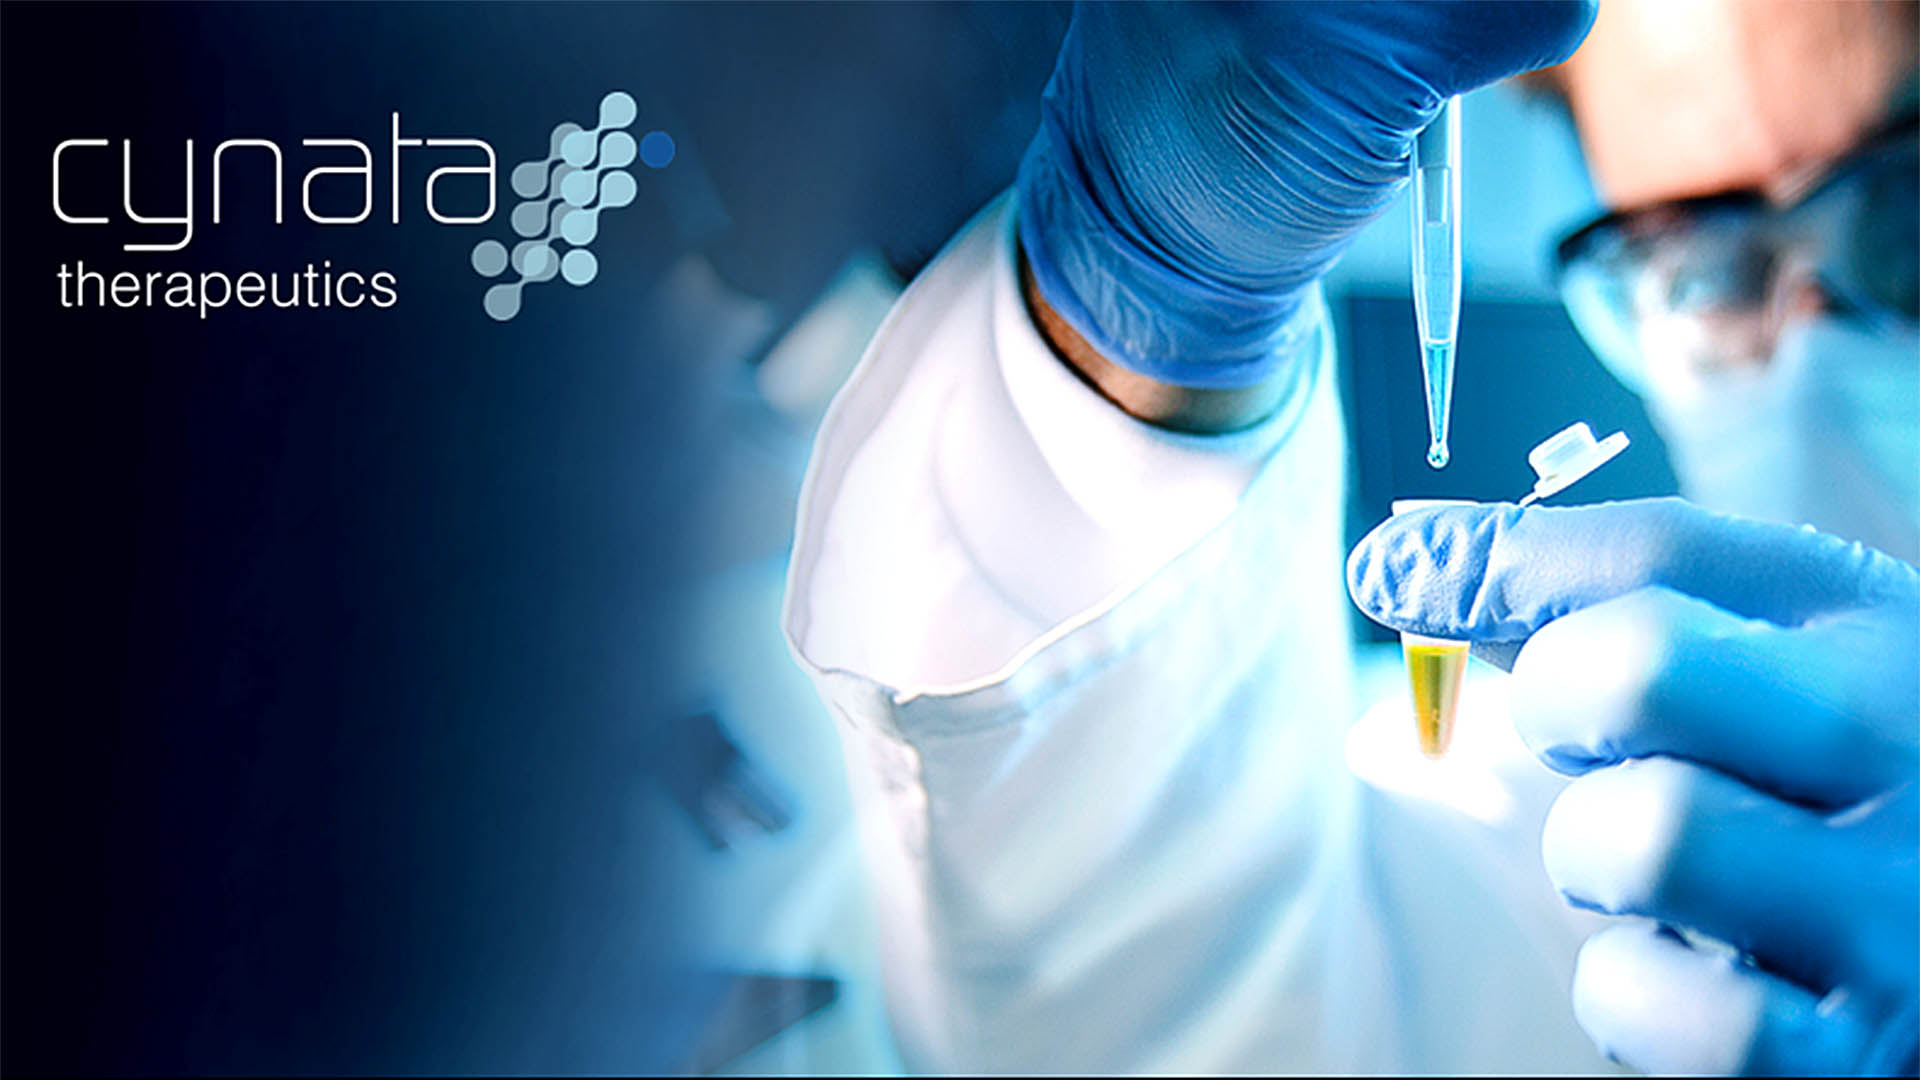 Cynata Therapeutics (ASX:CYP) 1H20 results & outlook